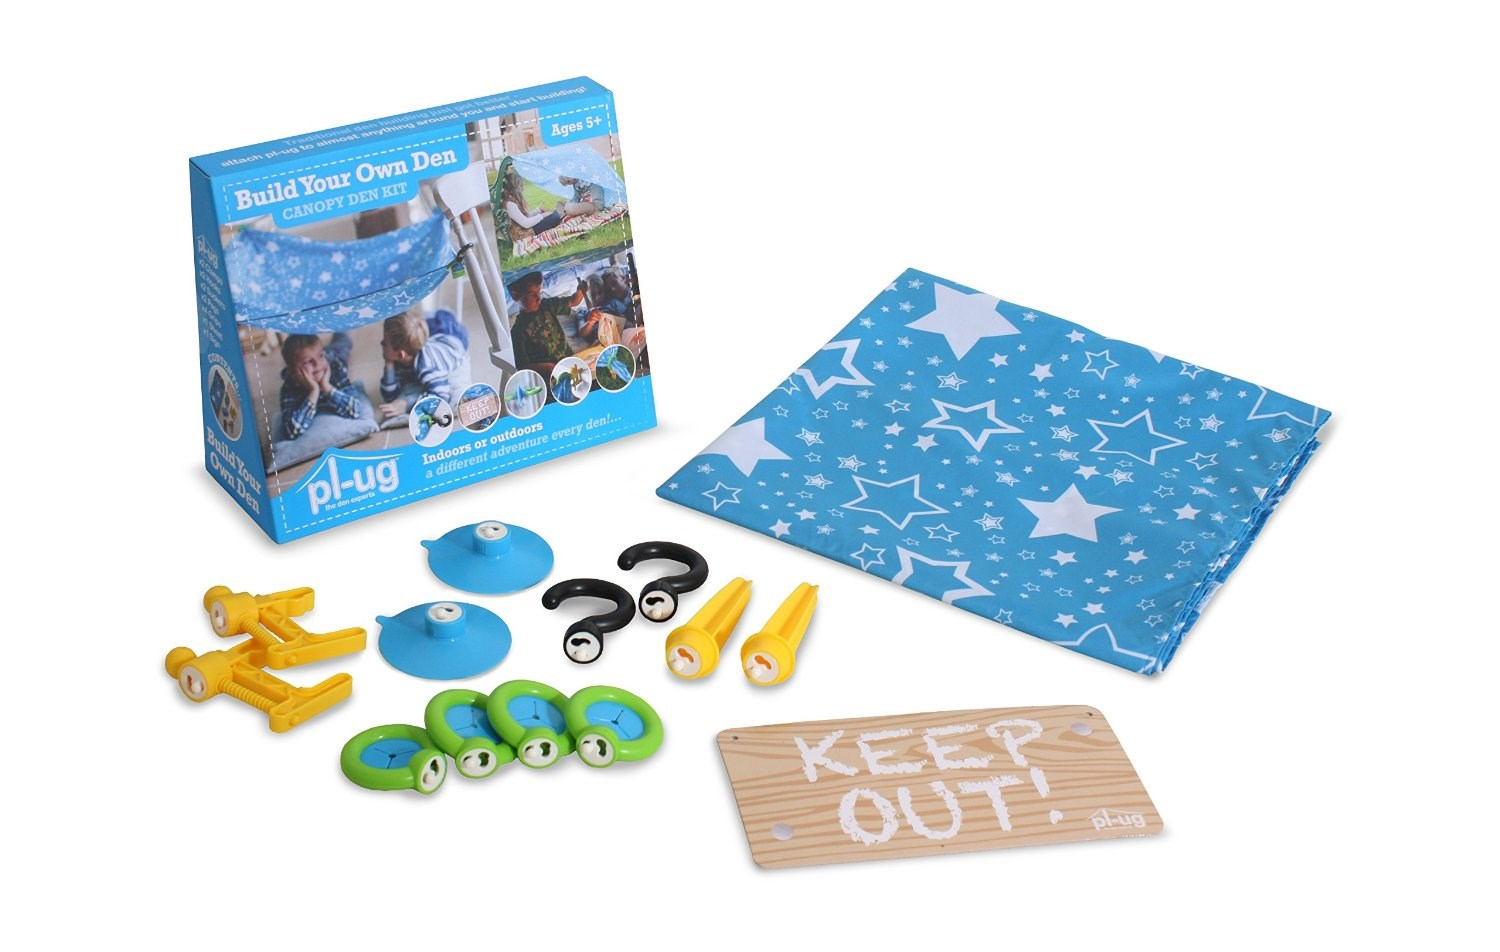 PL-UG Medium Den Building Kit